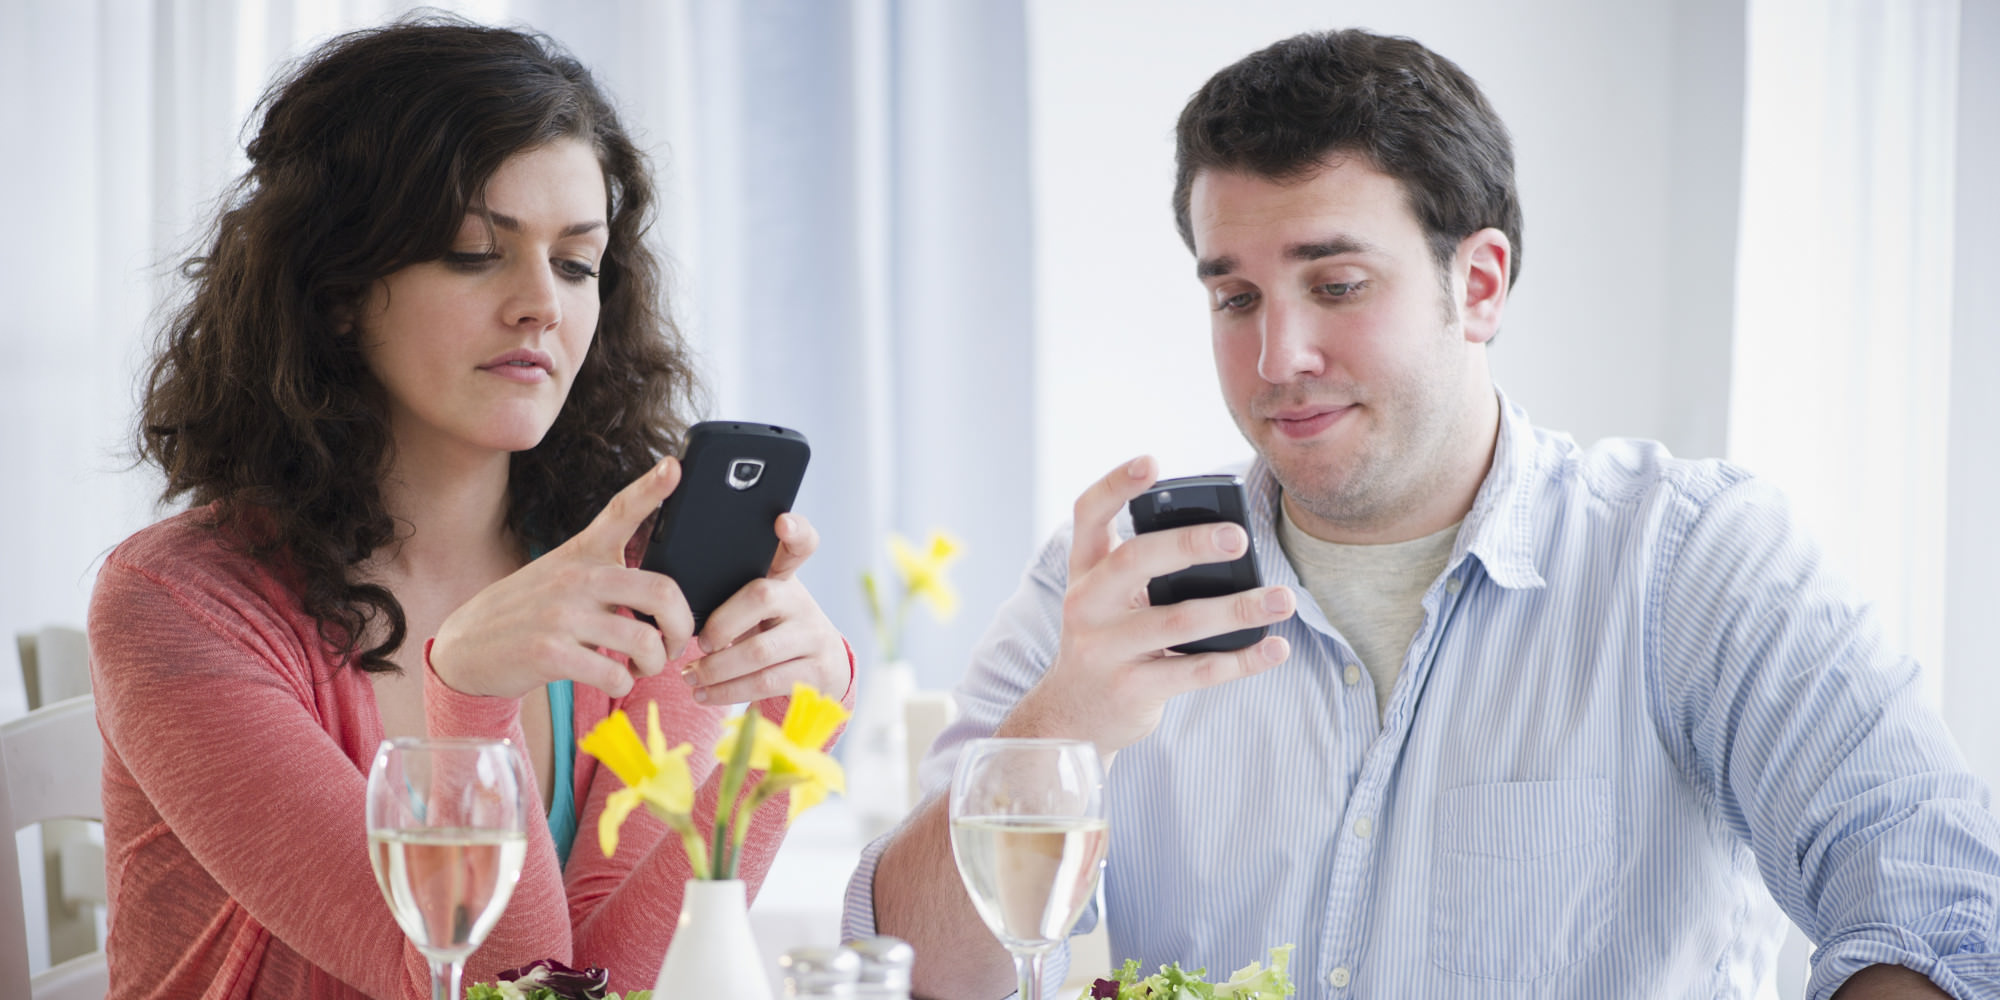 tinder texting while having dinner